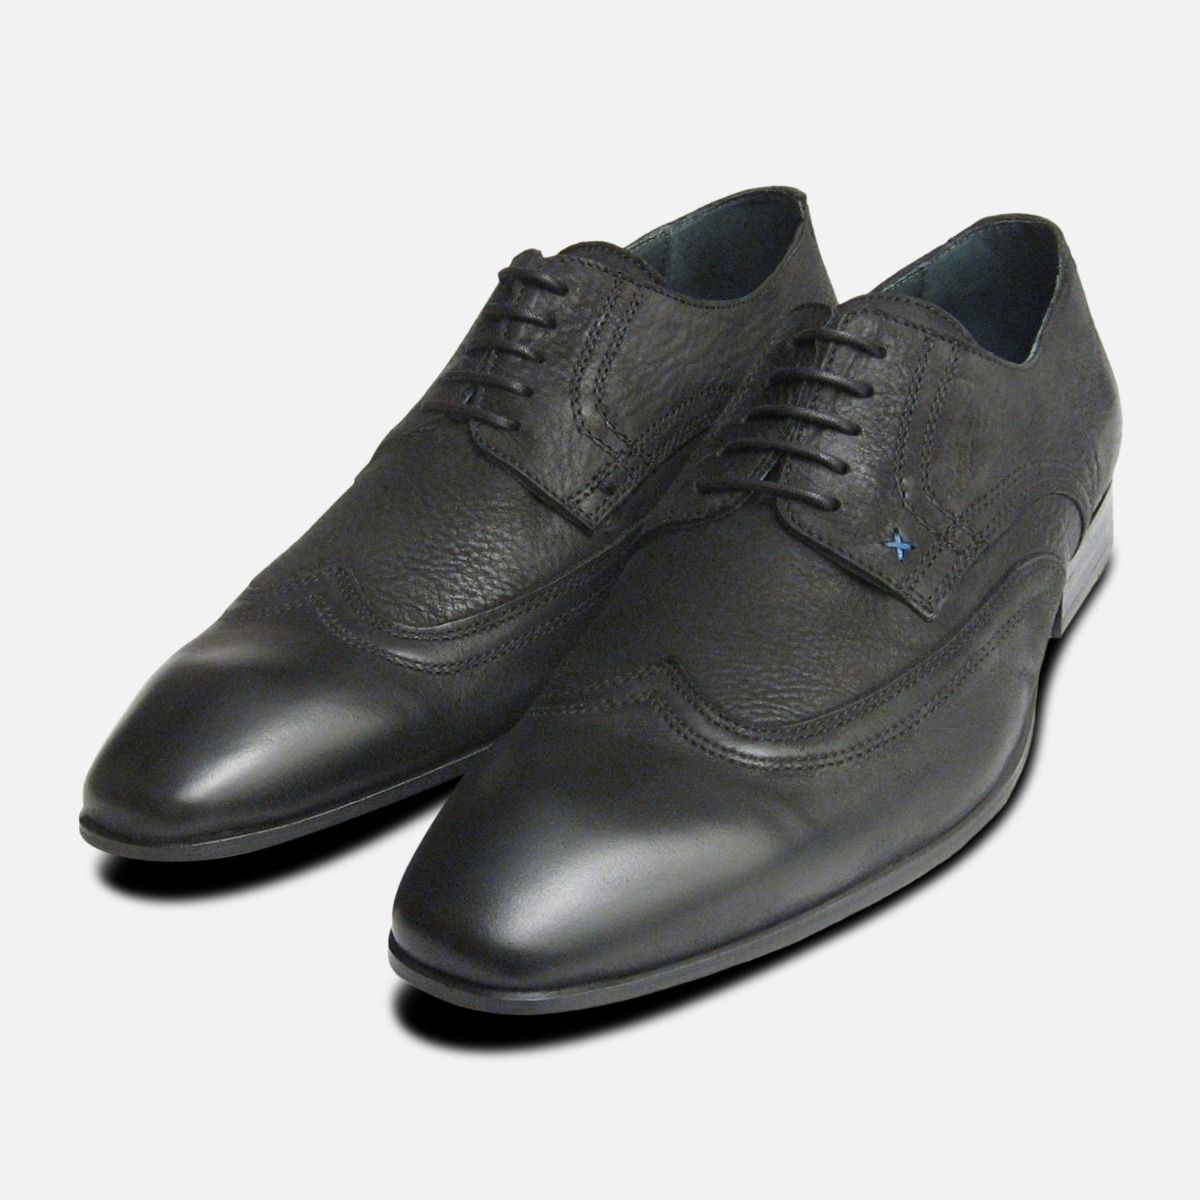 Black Waxy Lace Up Shoes for Men by